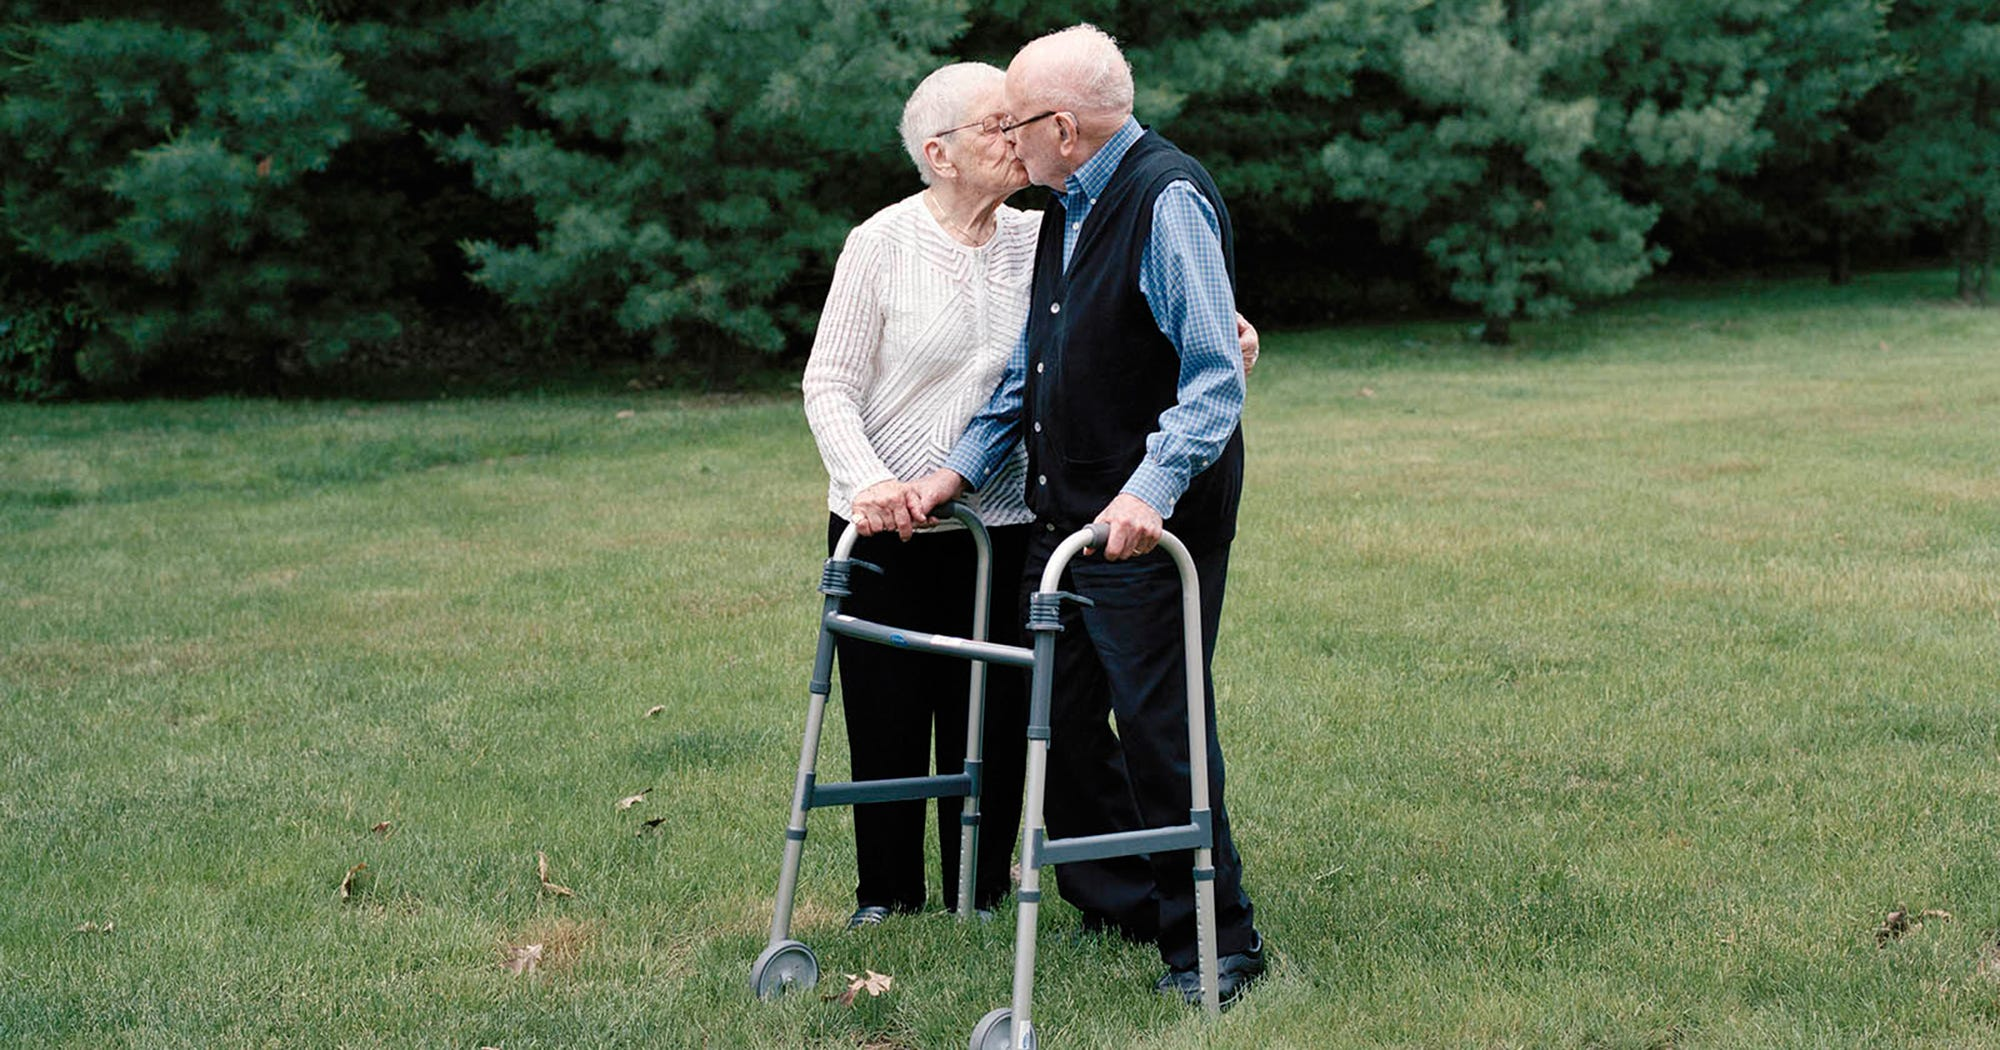 This Is What 50 Years Of True Love Looks Like